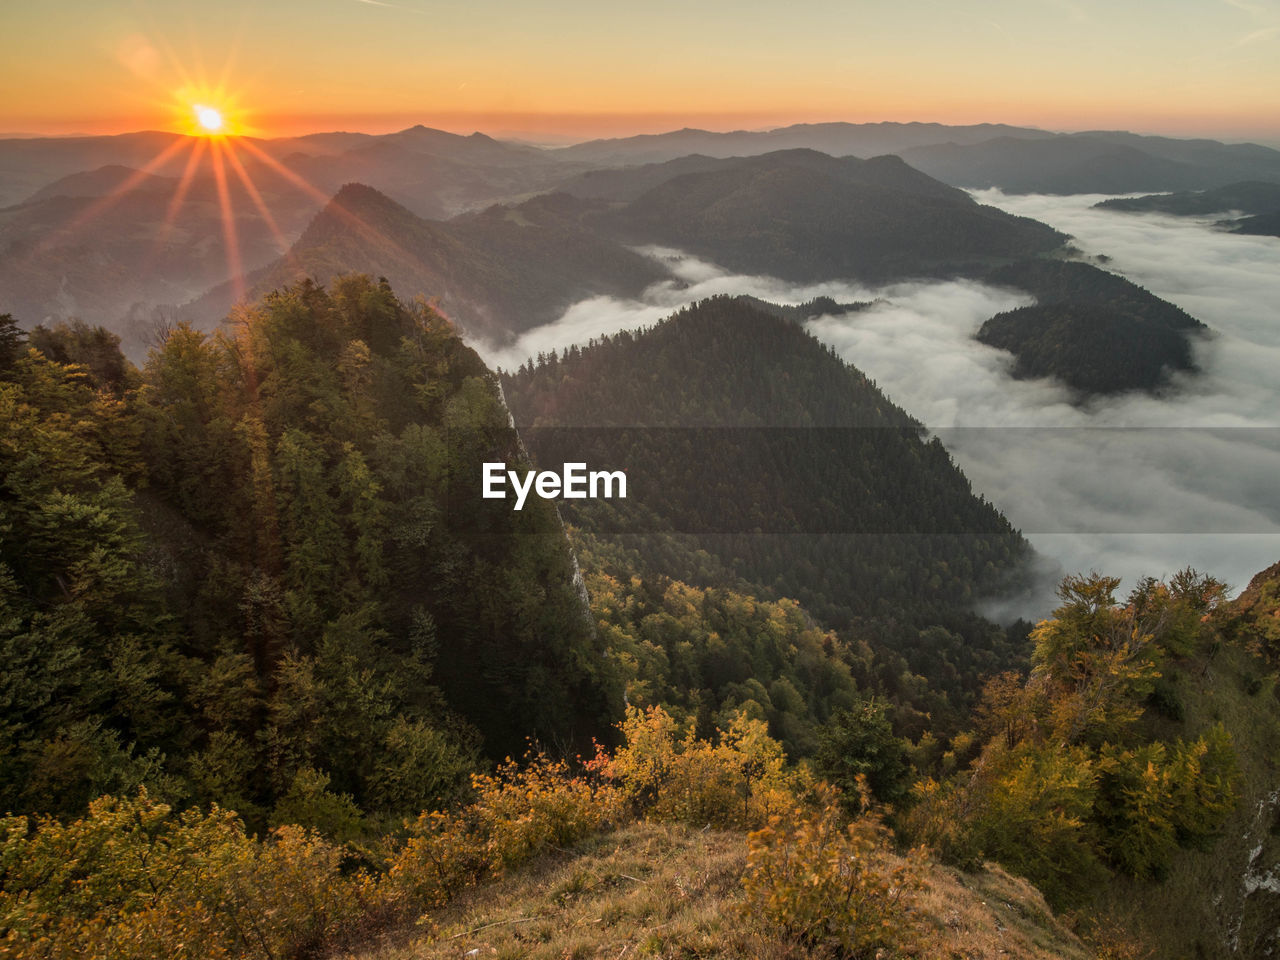 scenics - nature, beauty in nature, mountain, tranquil scene, sky, tranquility, plant, tree, nature, sunset, non-urban scene, landscape, environment, no people, cloud - sky, idyllic, mountain range, sun, high angle view, sunlight, outdoors, lens flare